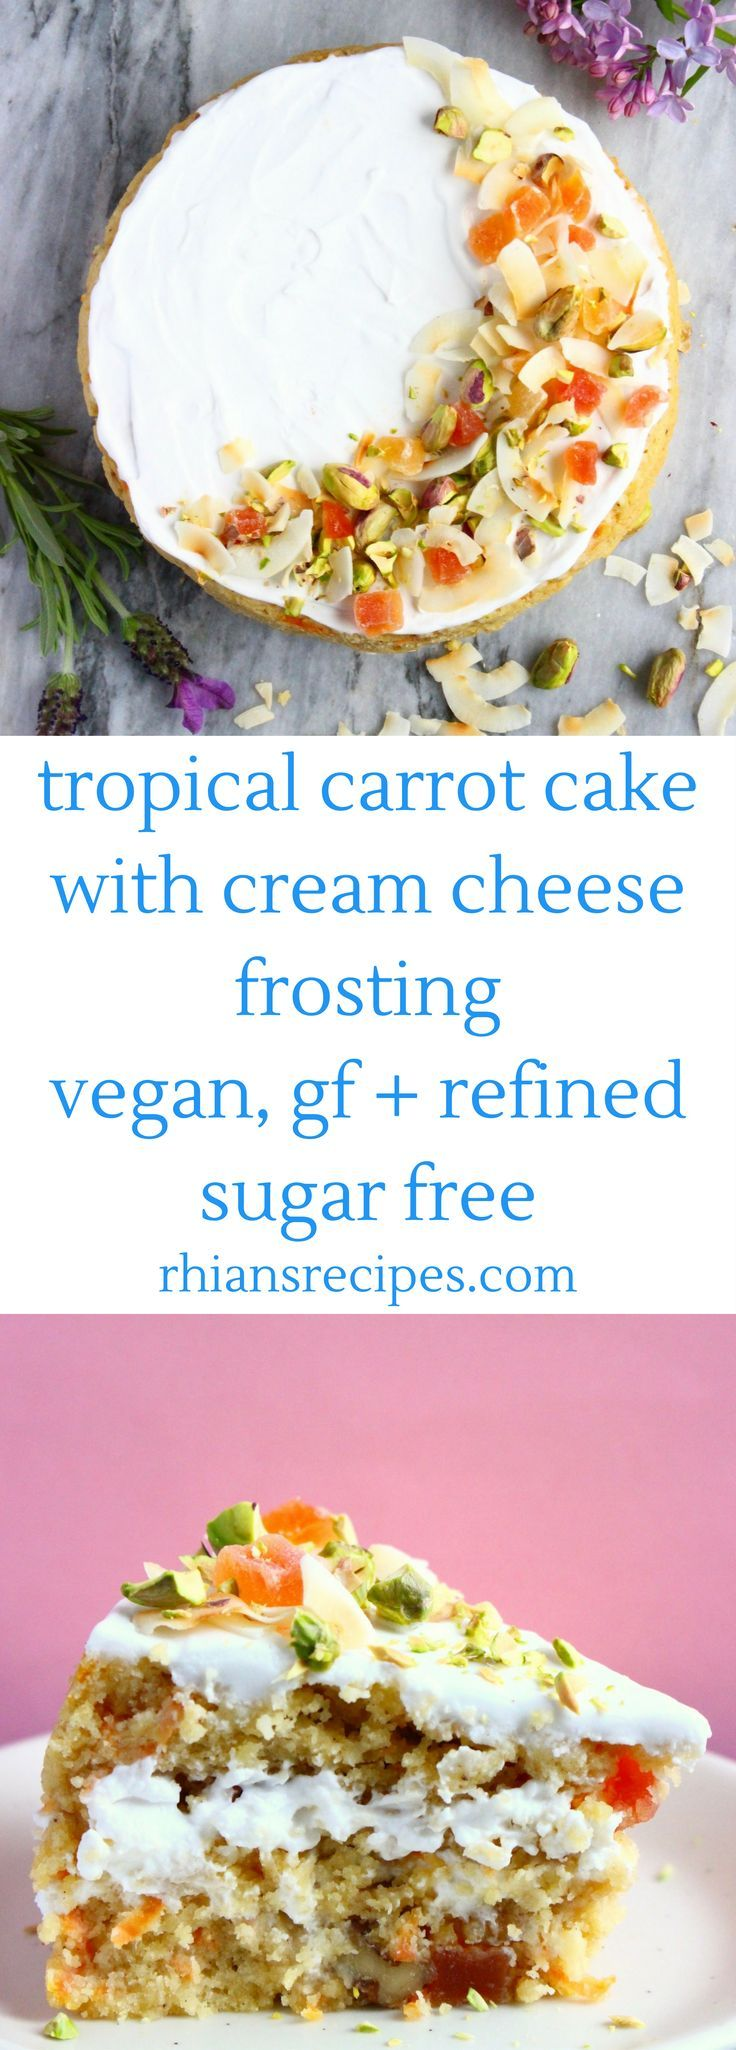 Tropical Carrot Cake with coconut, mango, pistachios and cream cheese frosting! Vegan, gluten-free, refined sugar free, easy to make